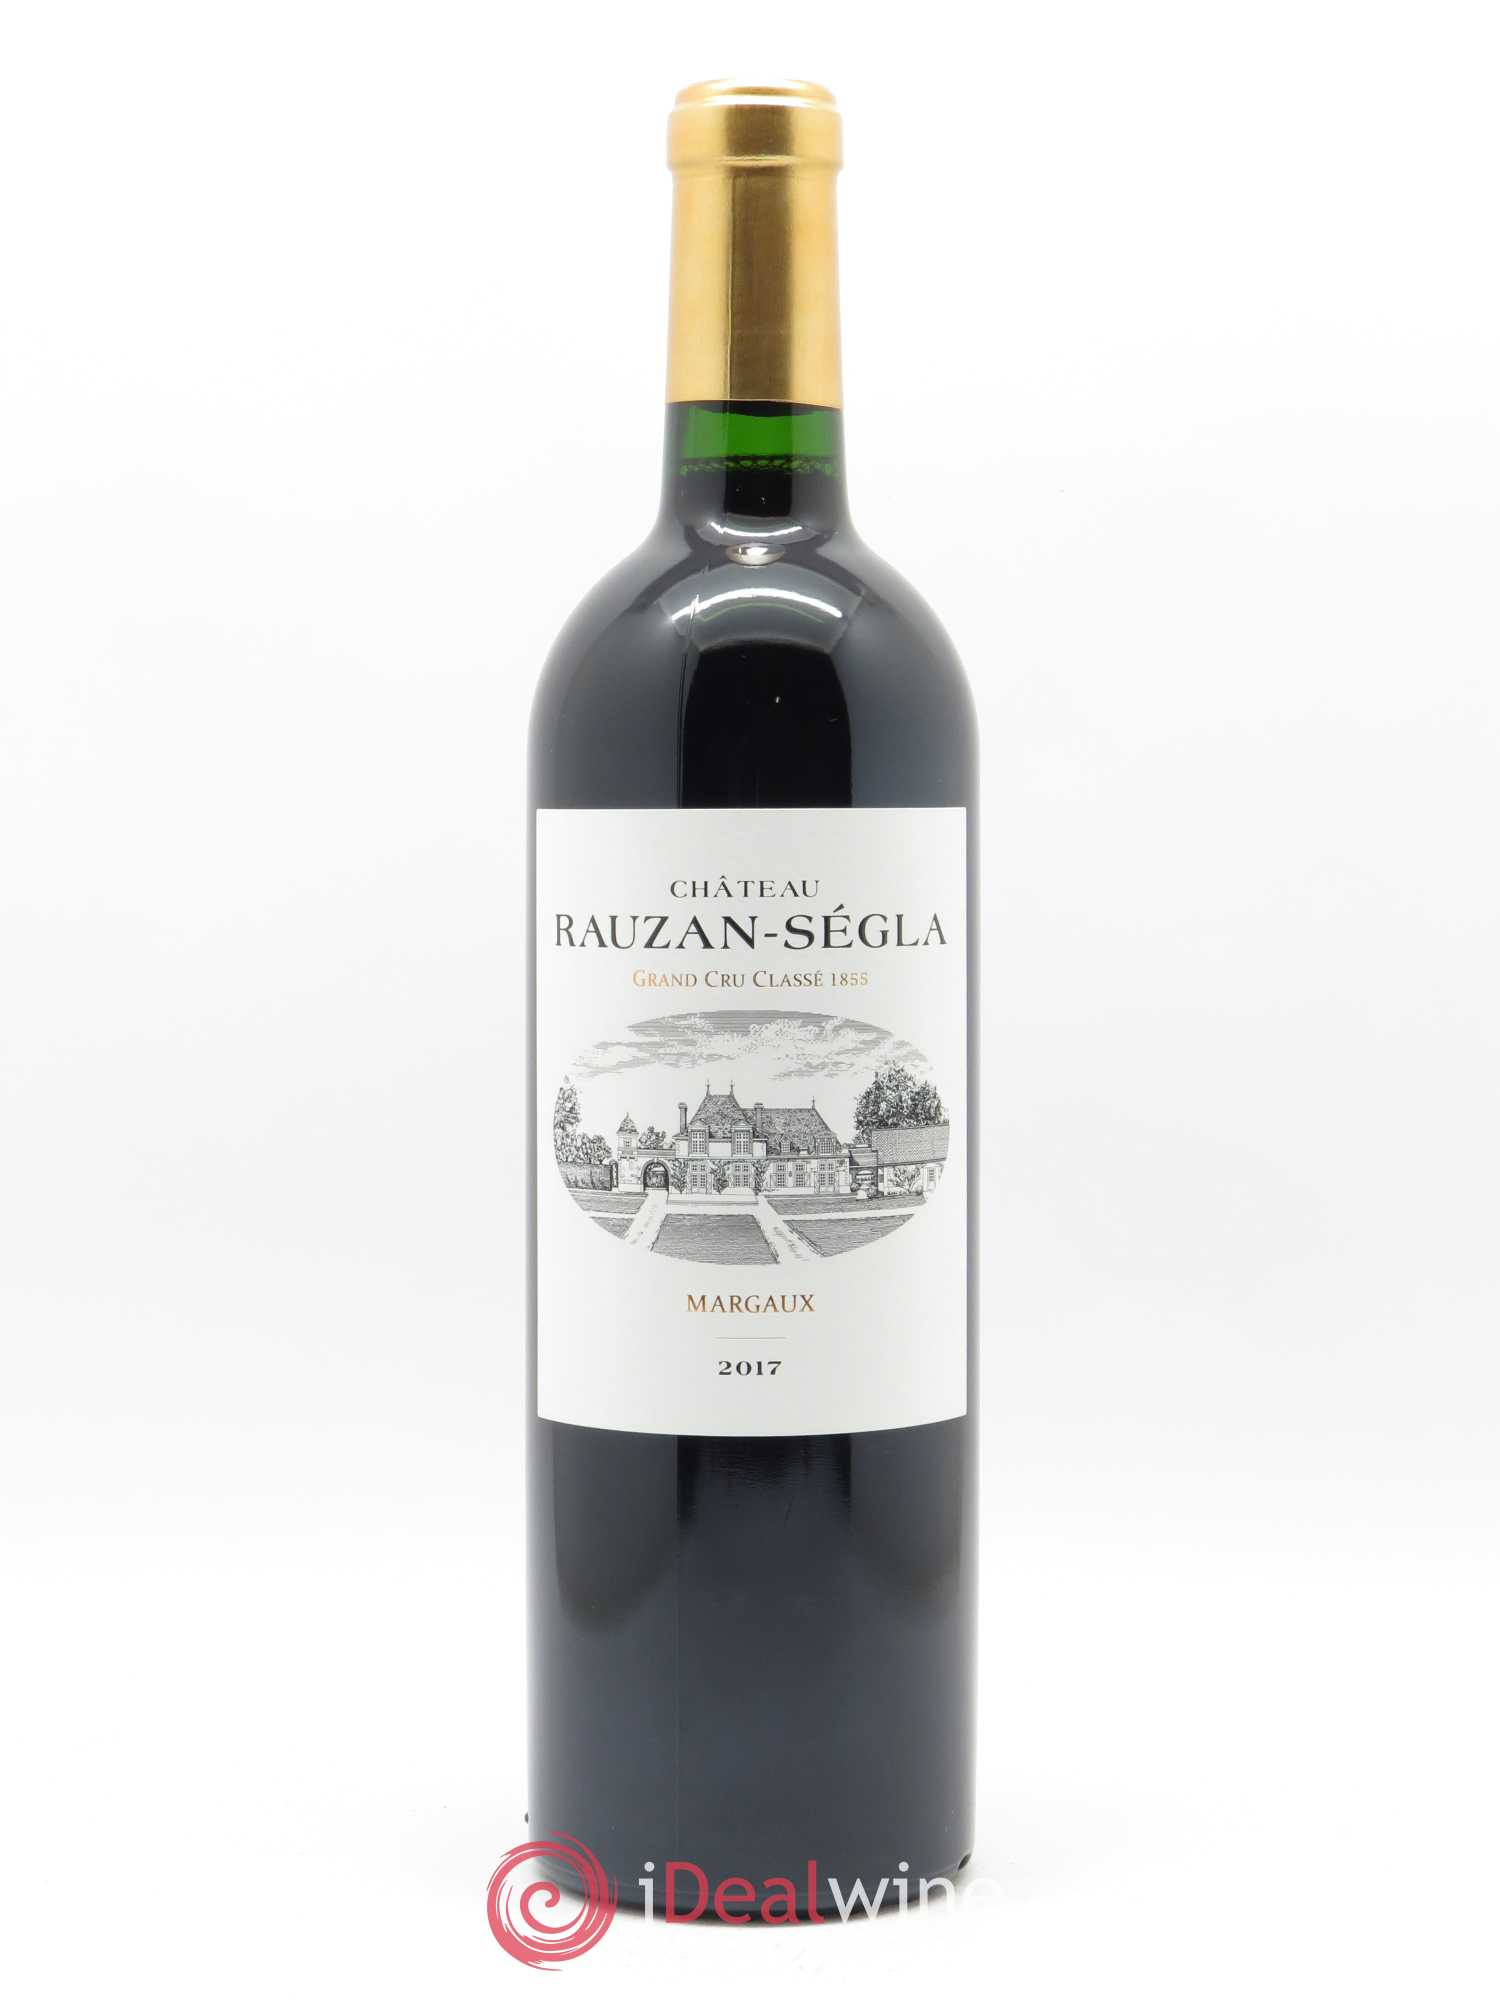 Château Rauzan Ségla (Rausan Ségla) (OWC if 6 btls) 2017 - Lot of 1 Bottle